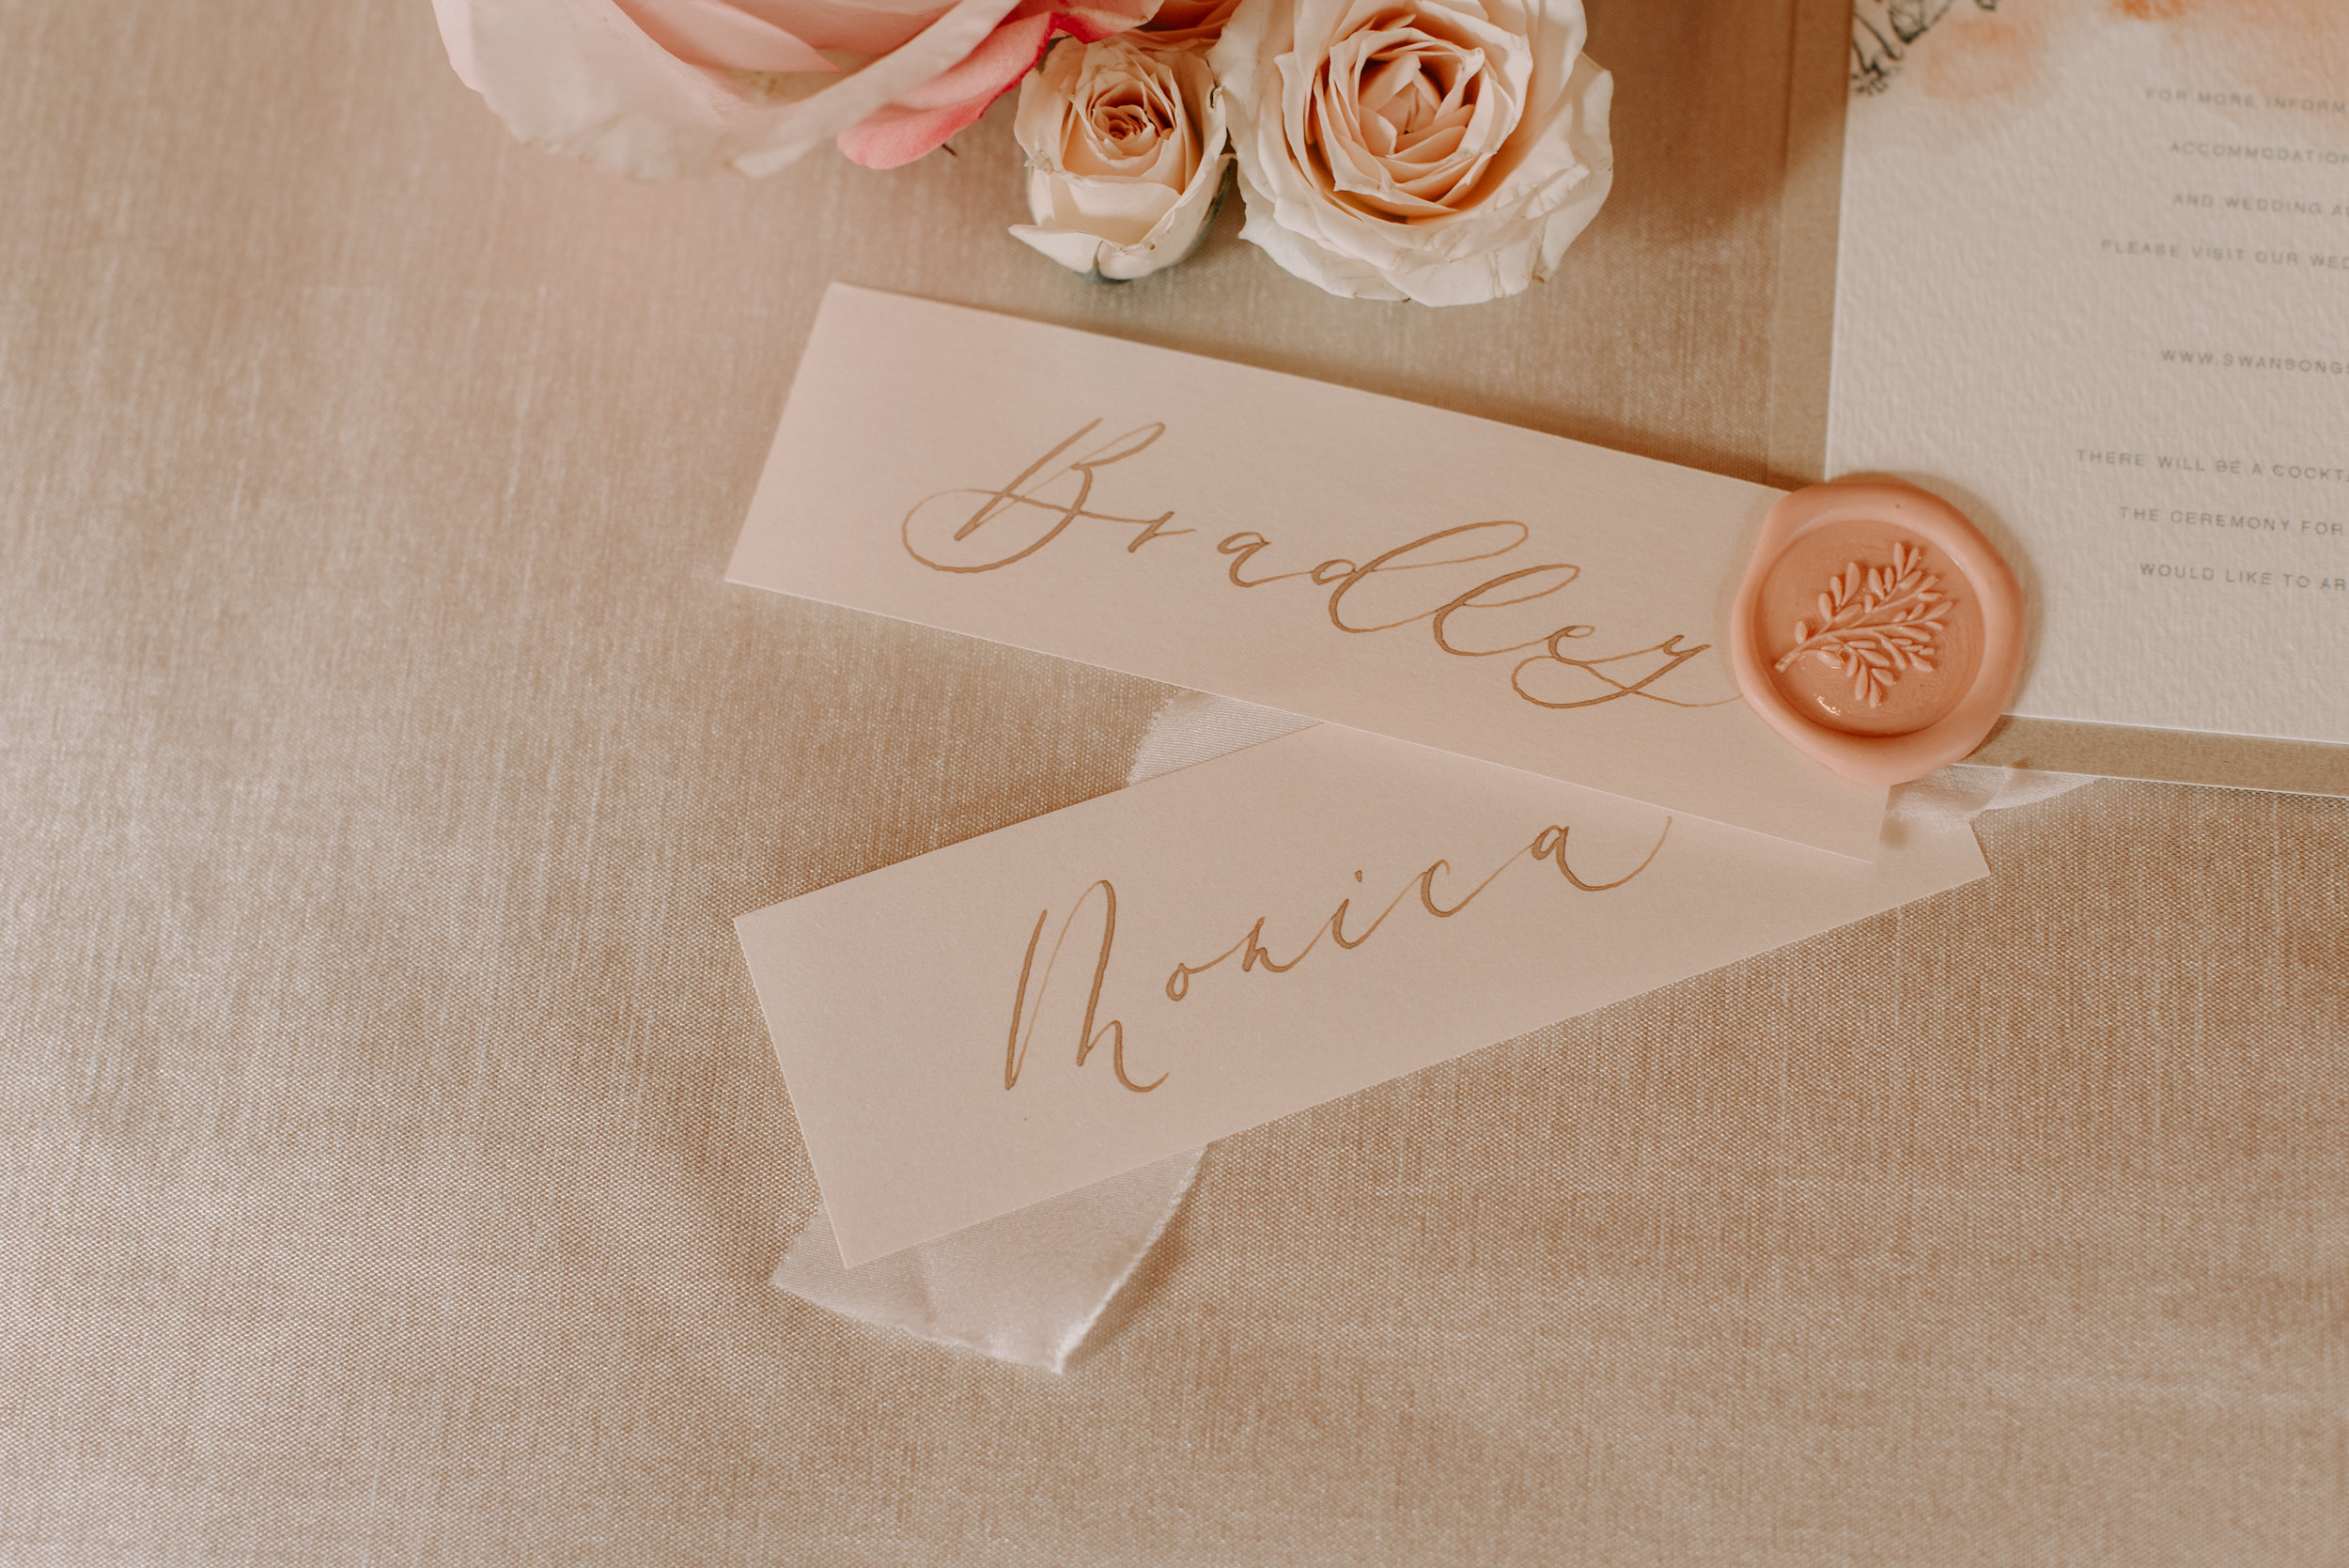 Copy of Copy of Wedding Details: Place cards, Letters & Dust